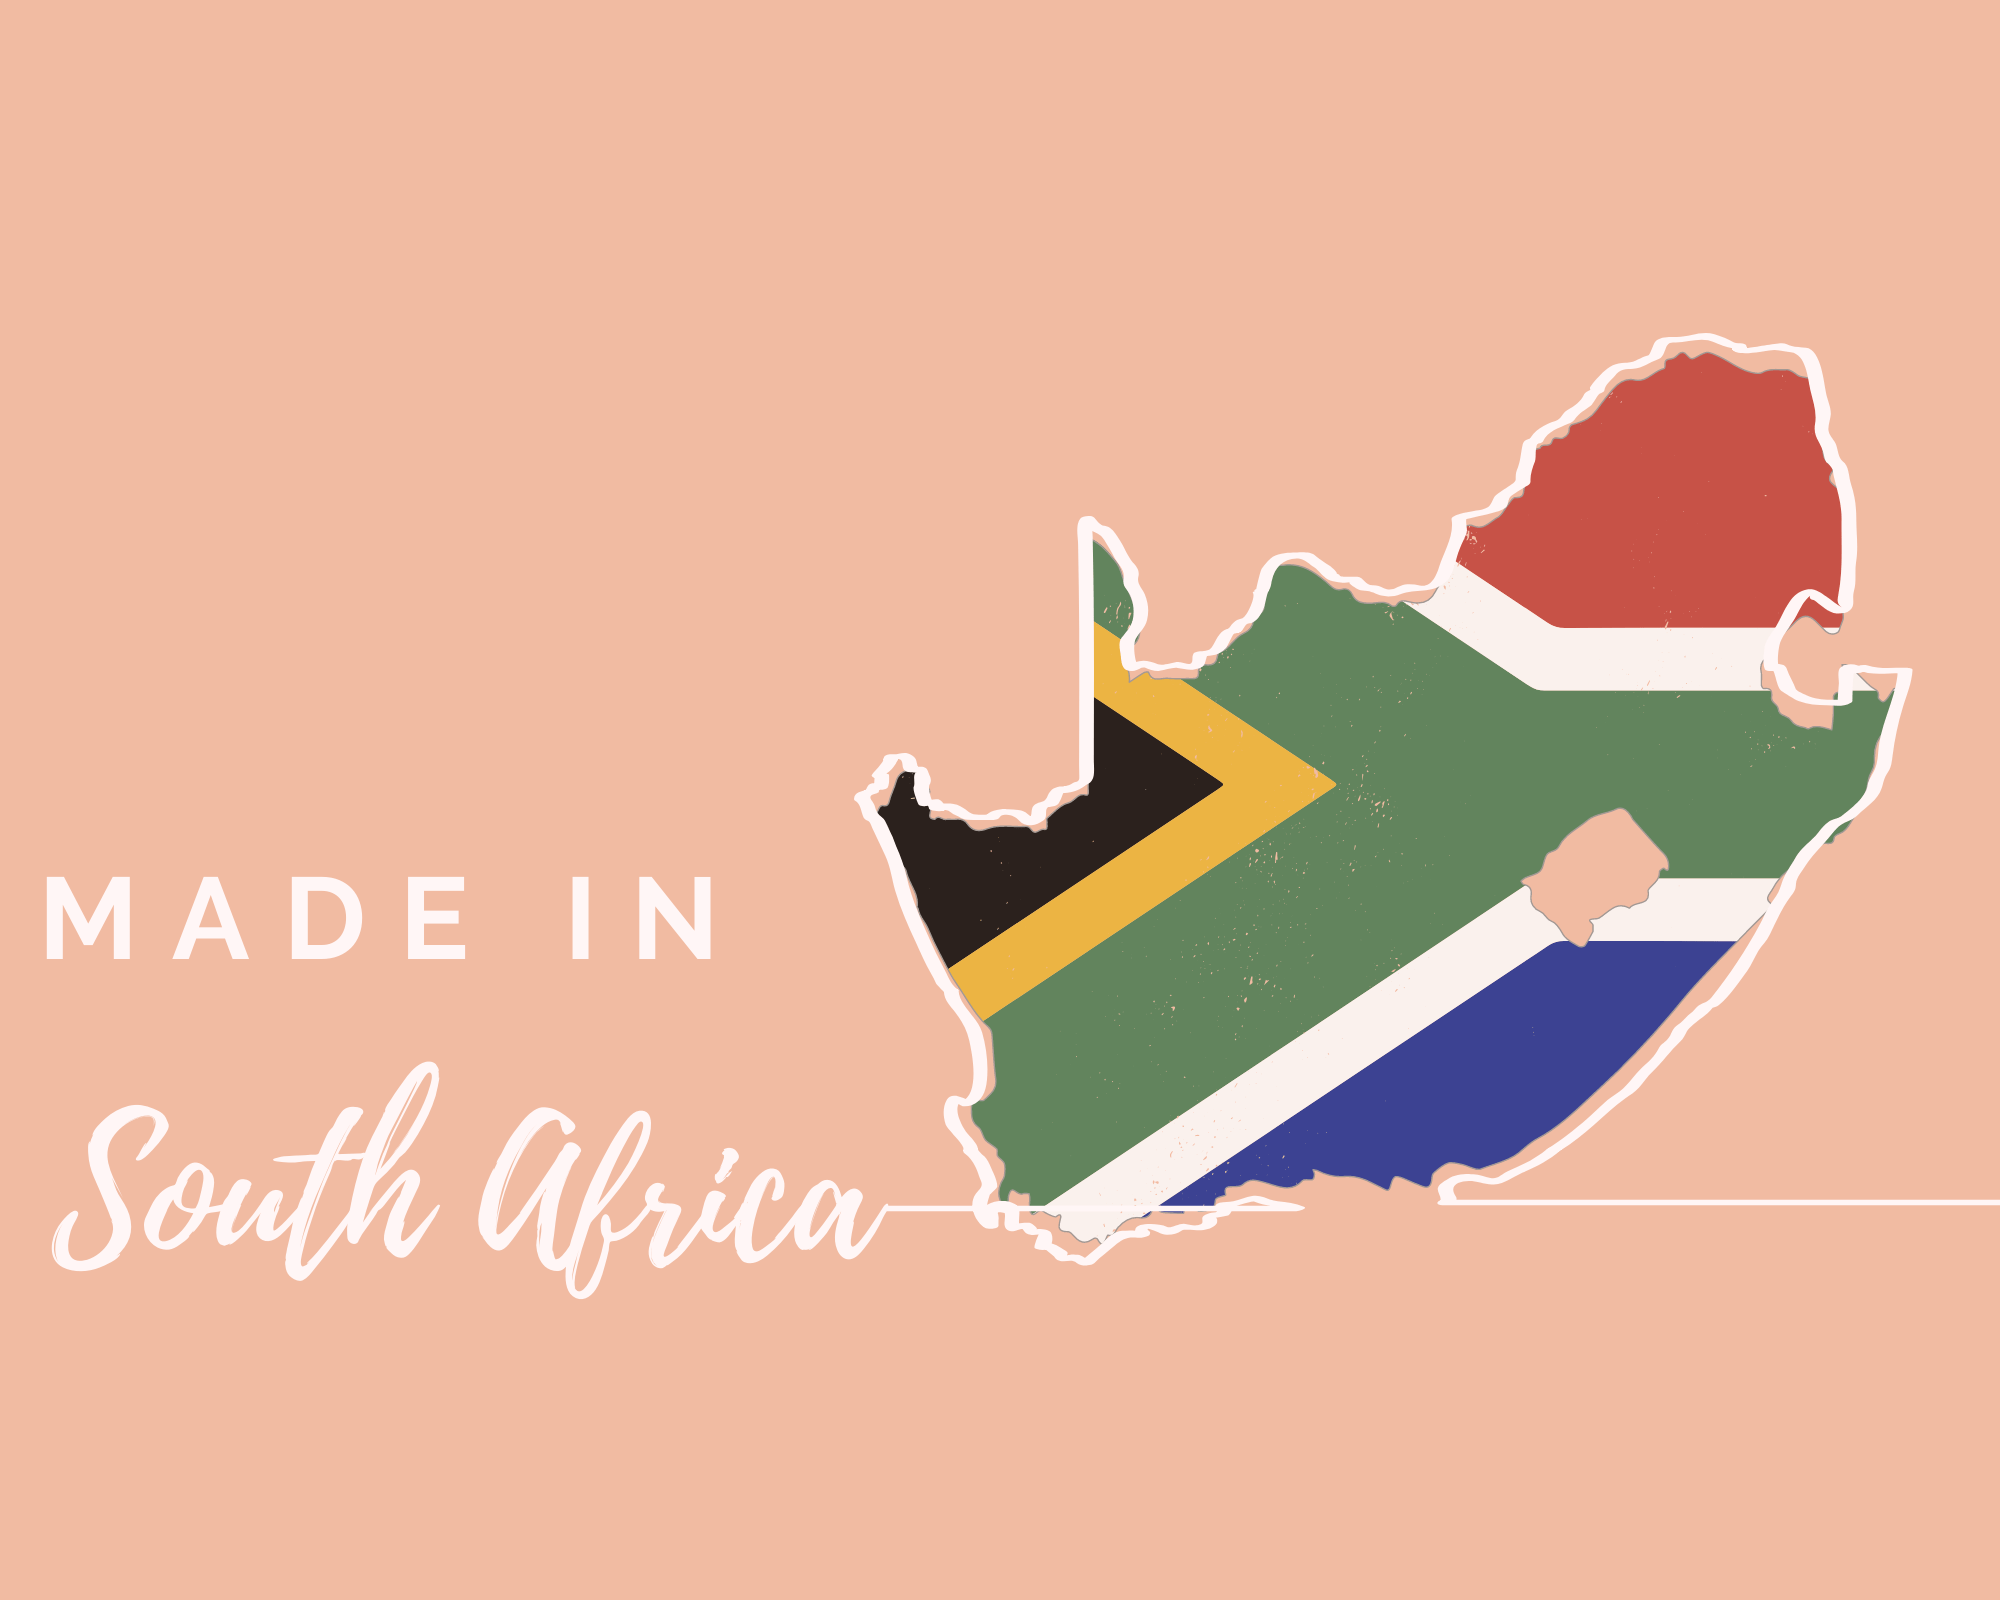 How to support local and shop small in South Africa